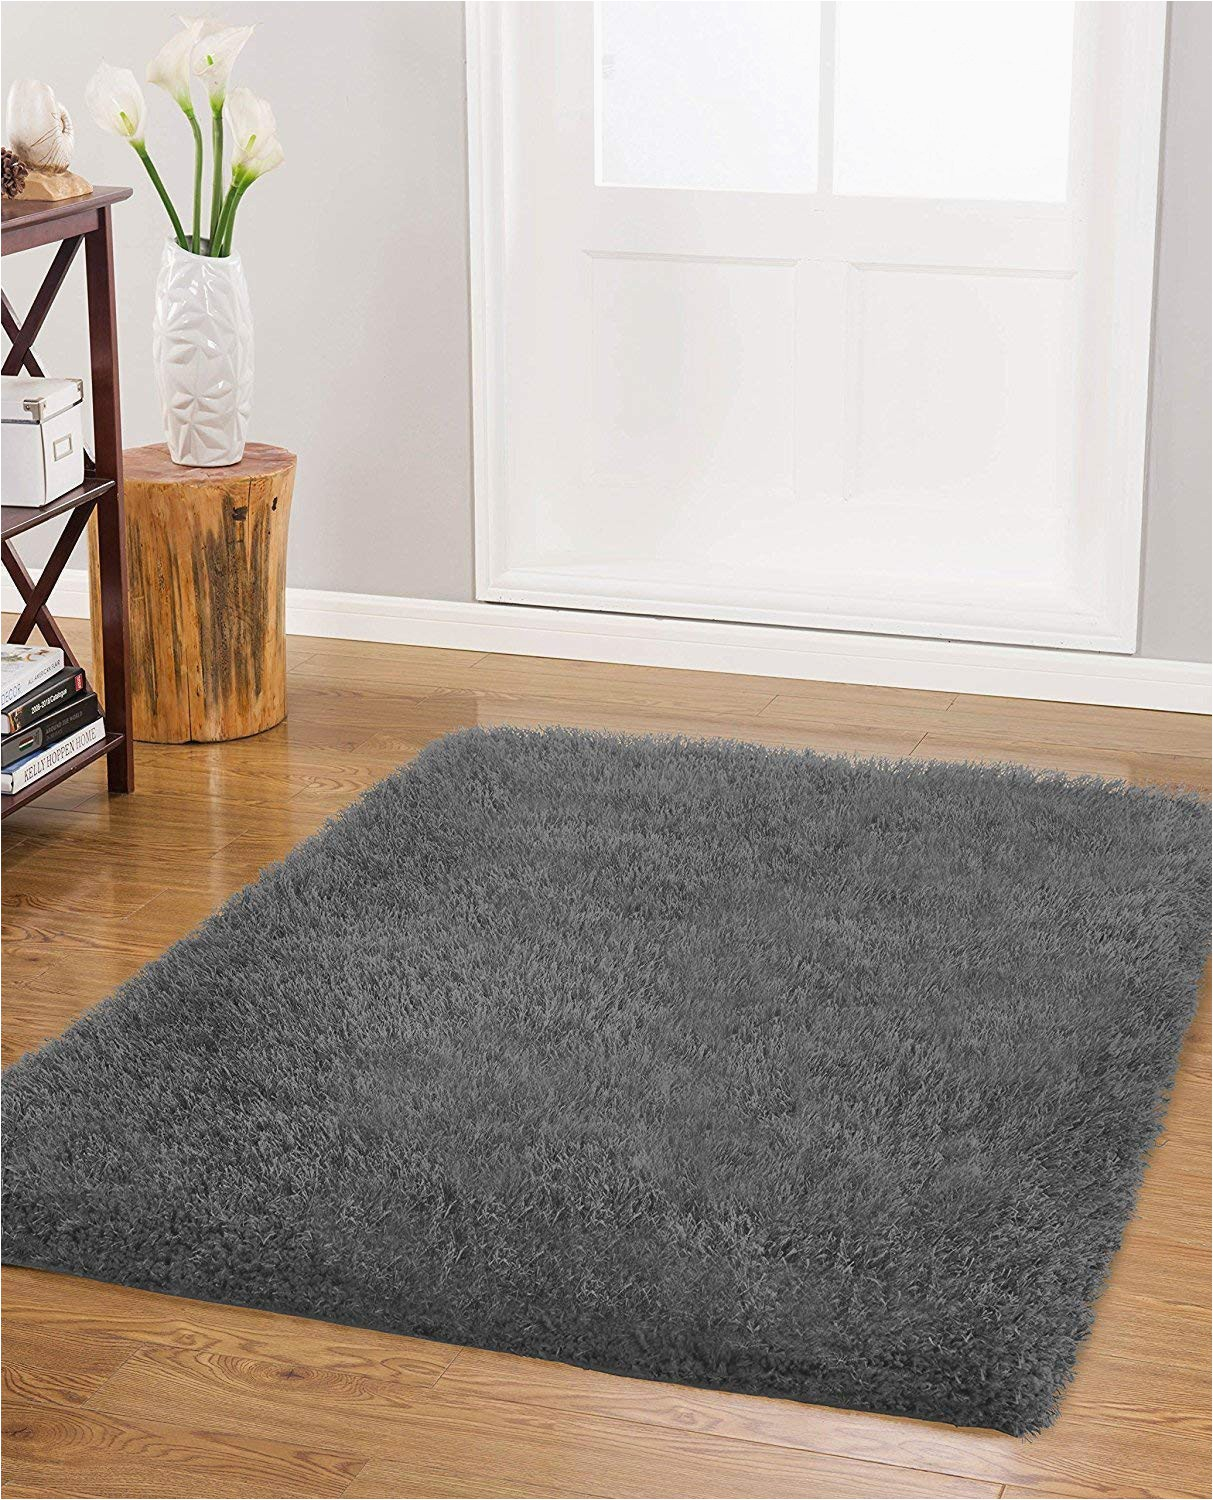 "40 X 24 Bath Rug Nothing Beyond Viola Polyster Shag Bath Rugs Collection 24"" X 40"" Dark Grey"